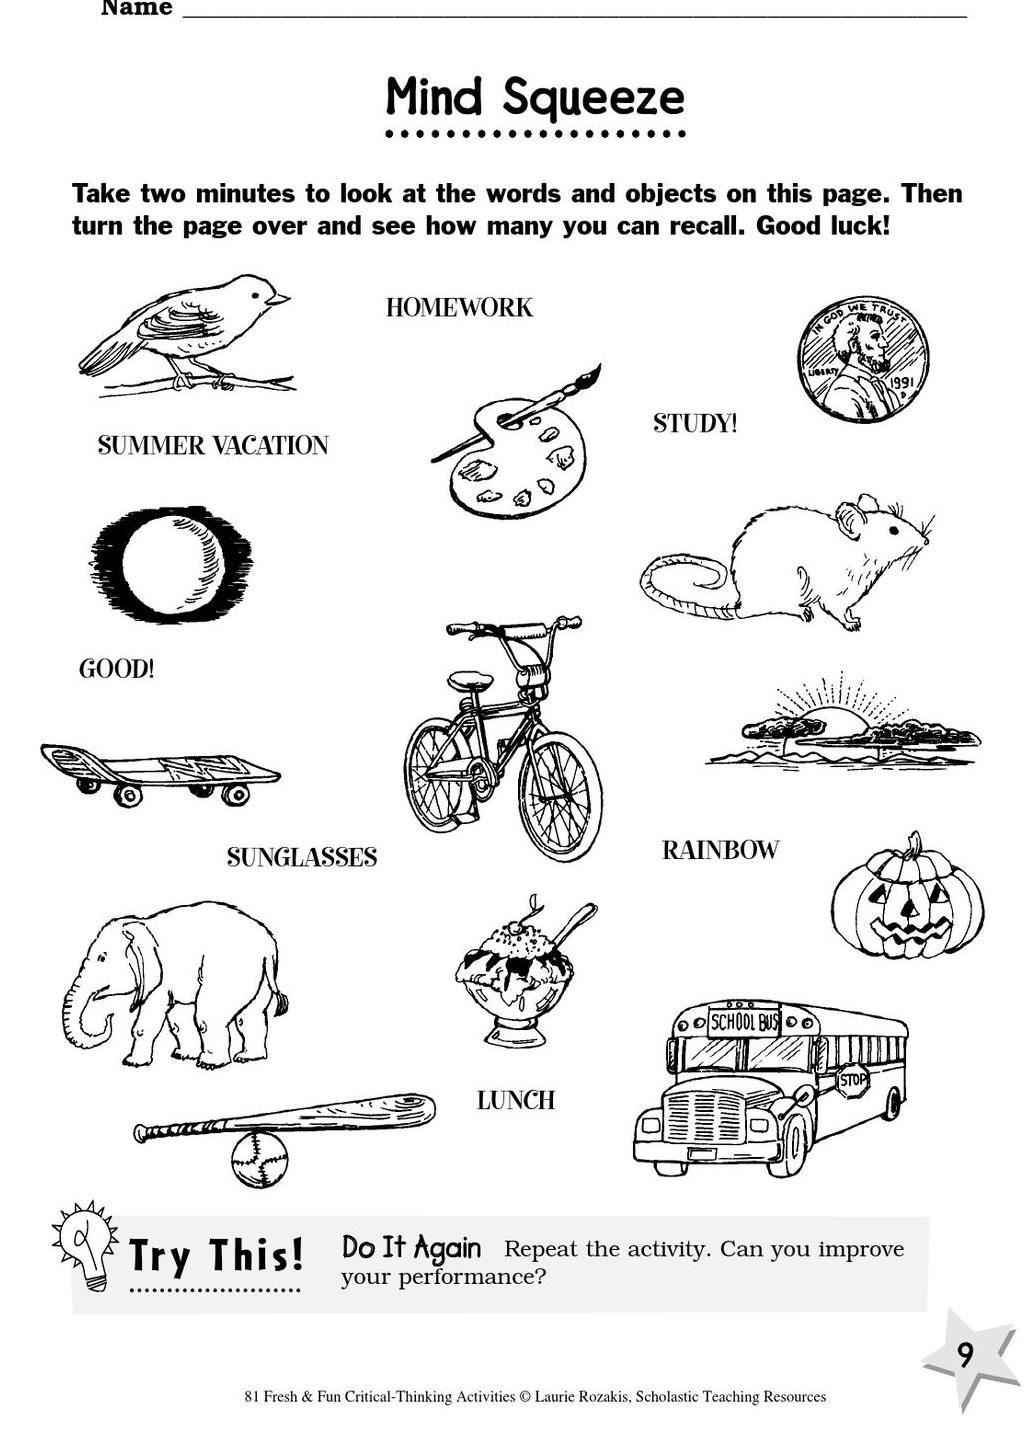 81 Fun Critical Thinking Activities With Images